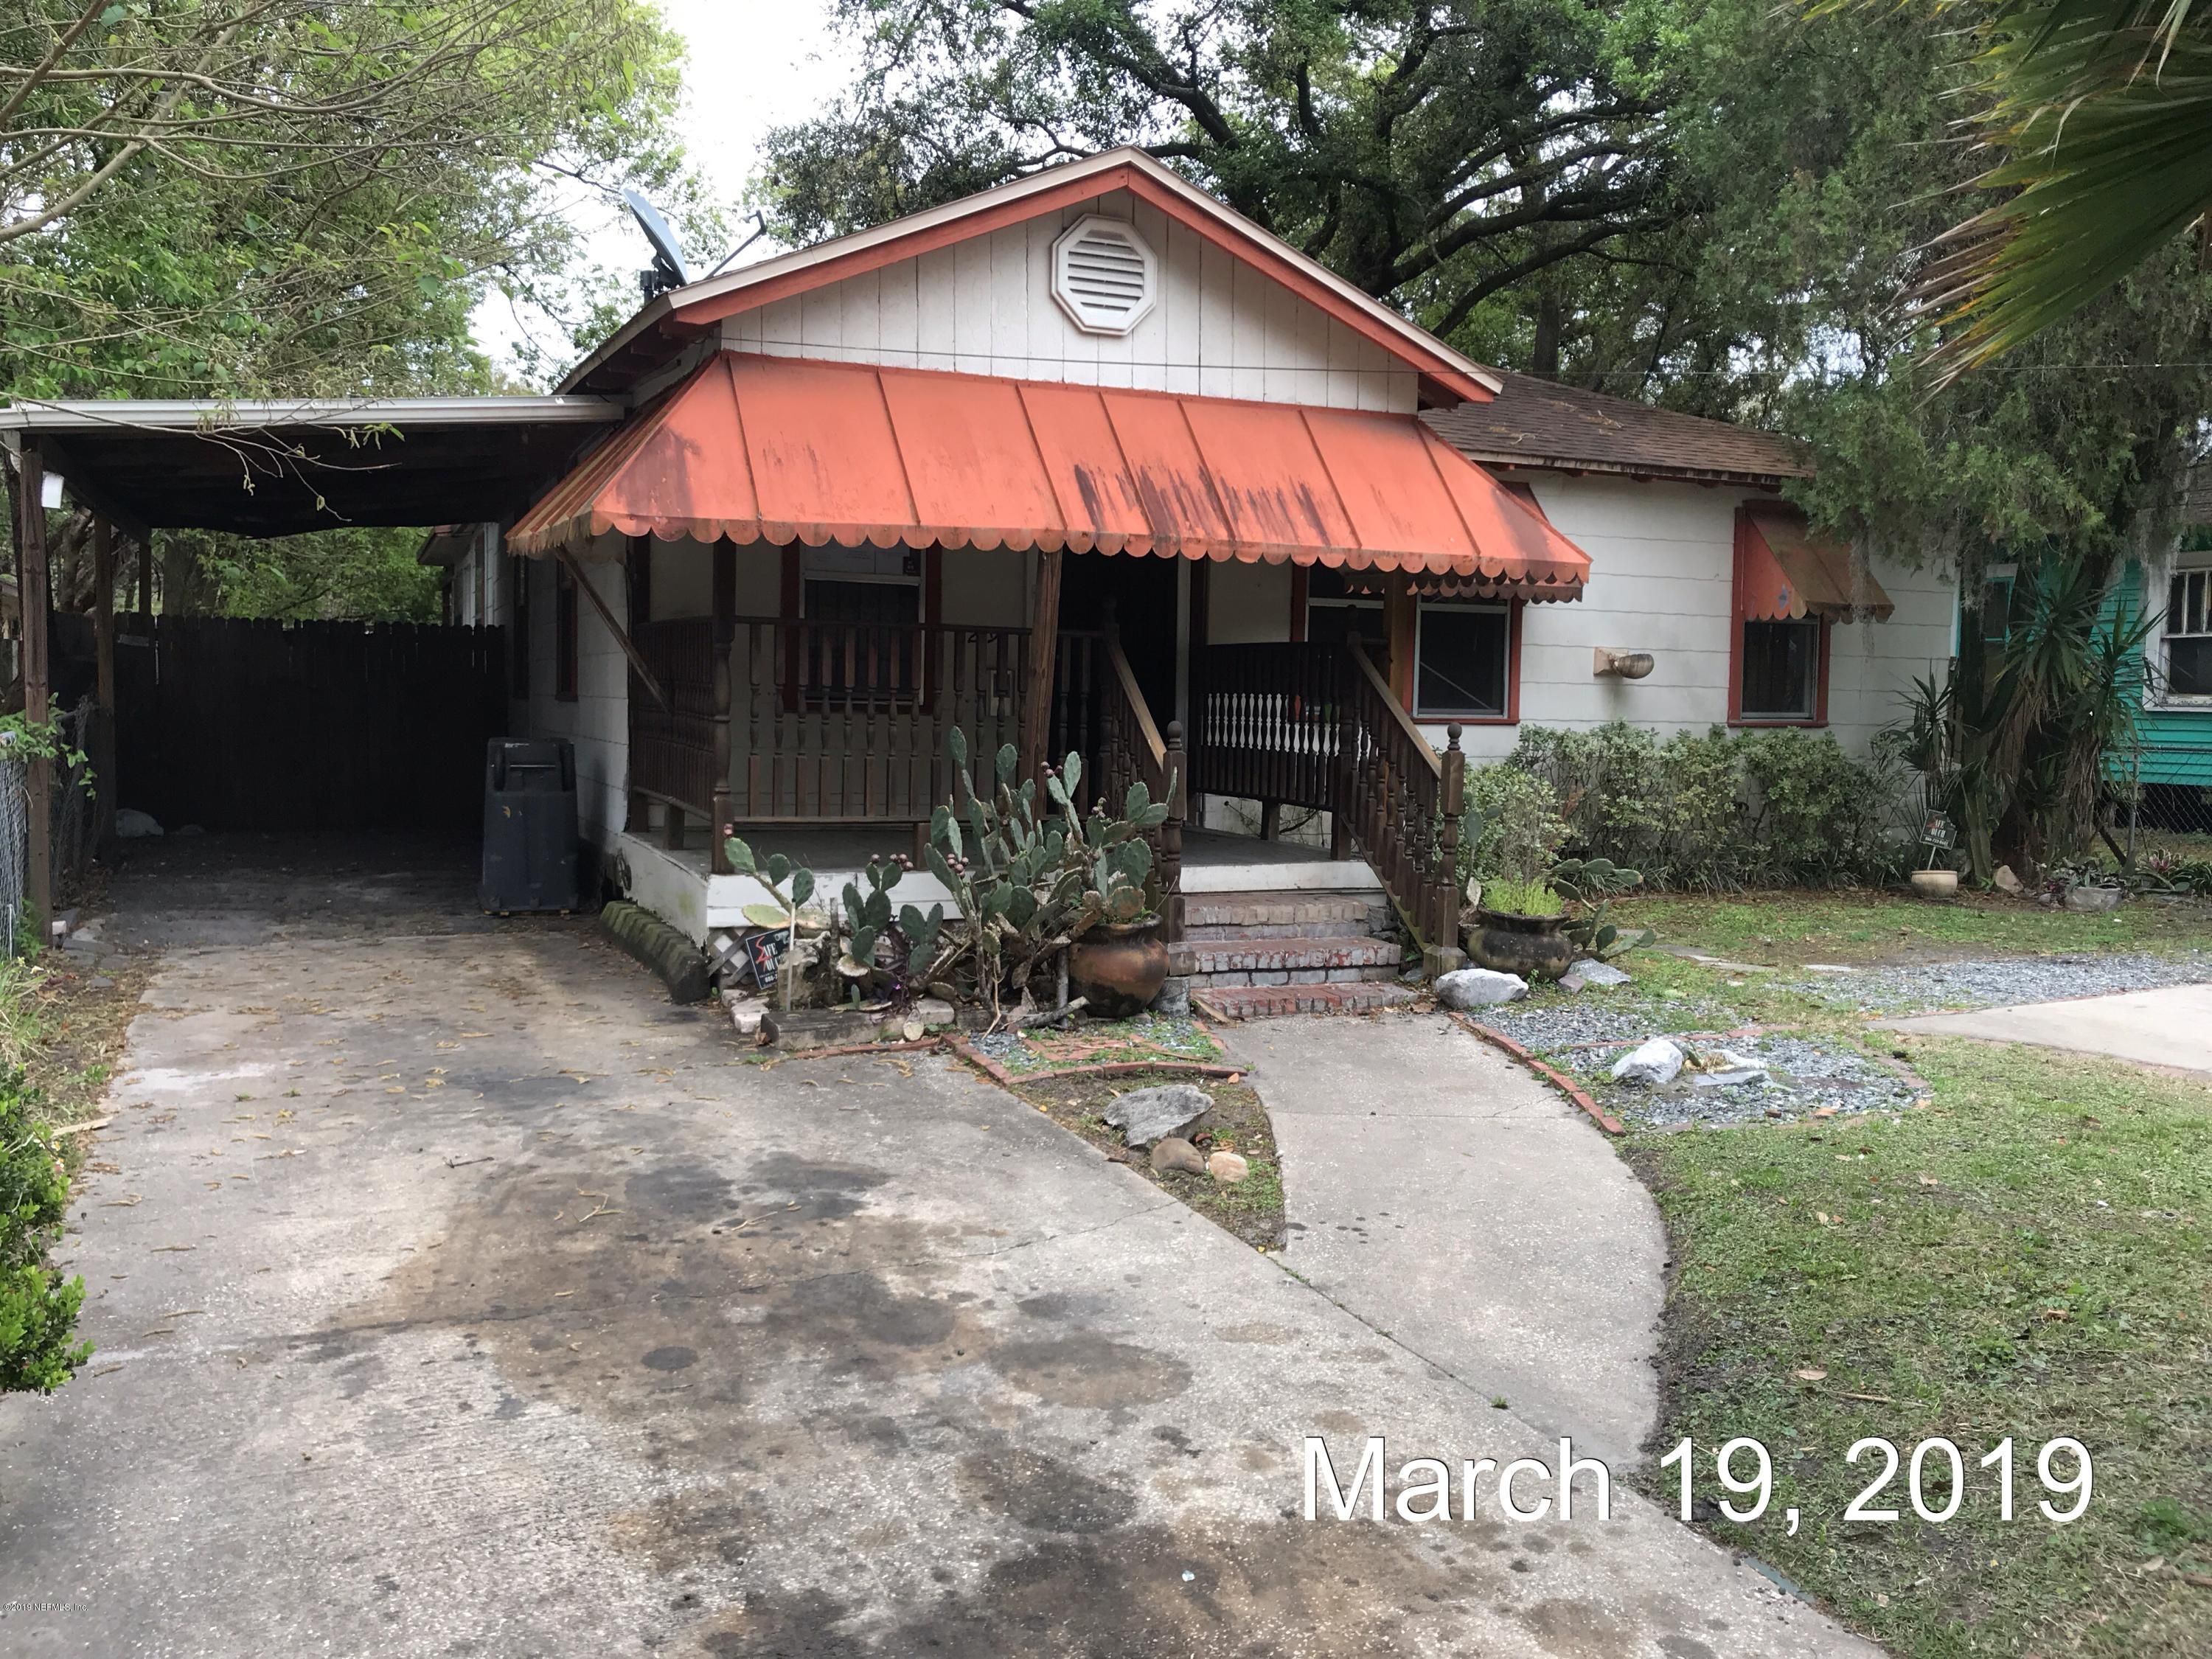 229 WILLOW BRANCH, JACKSONVILLE, FLORIDA 32254, 3 Bedrooms Bedrooms, ,1 BathroomBathrooms,Residential - single family,For sale,WILLOW BRANCH,986354